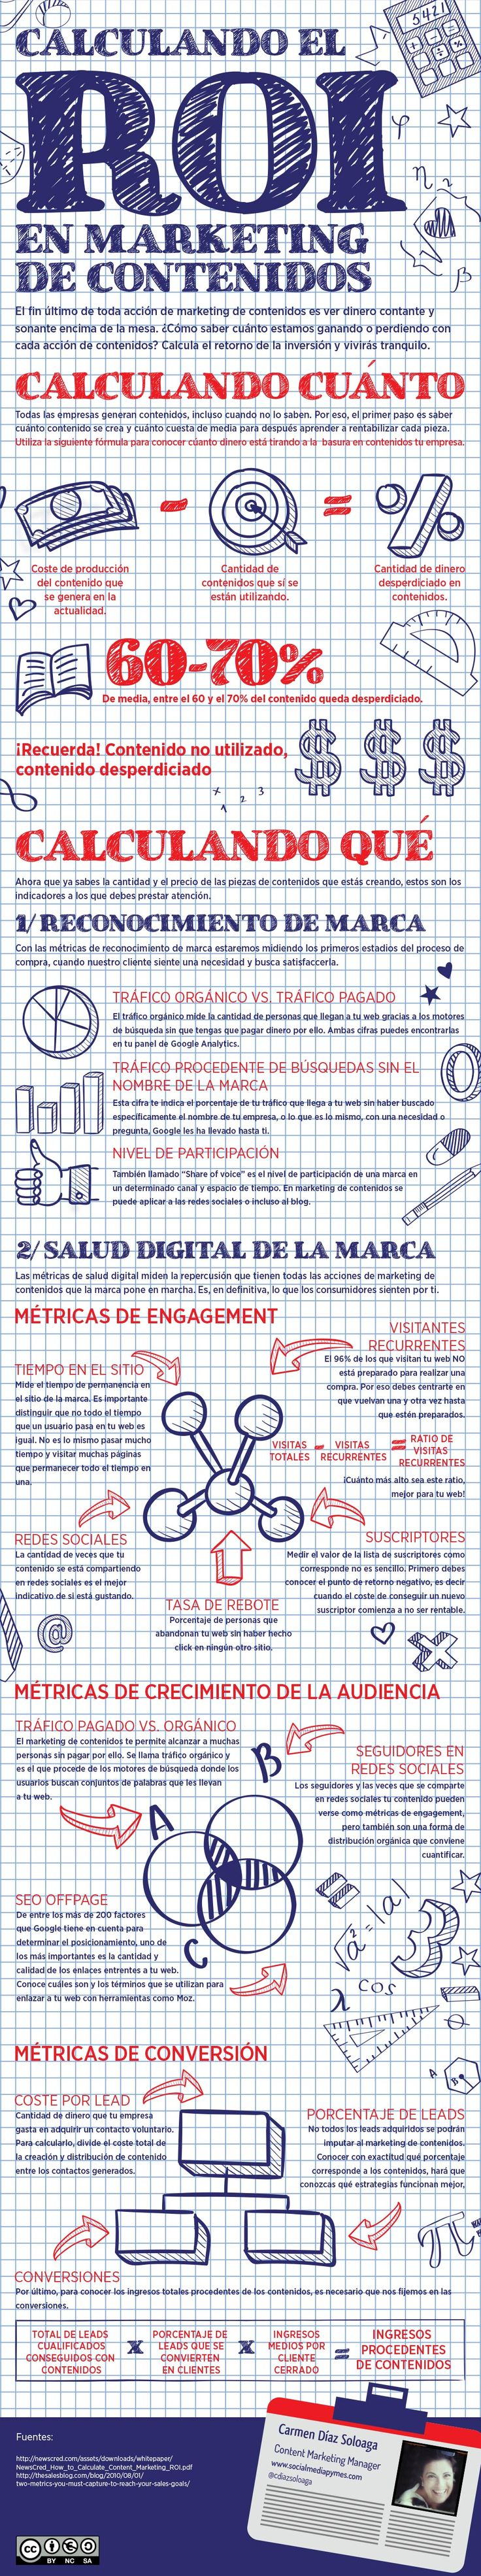 Calcula el ROI en marketing de contenidos #infografia #infographic #marketing